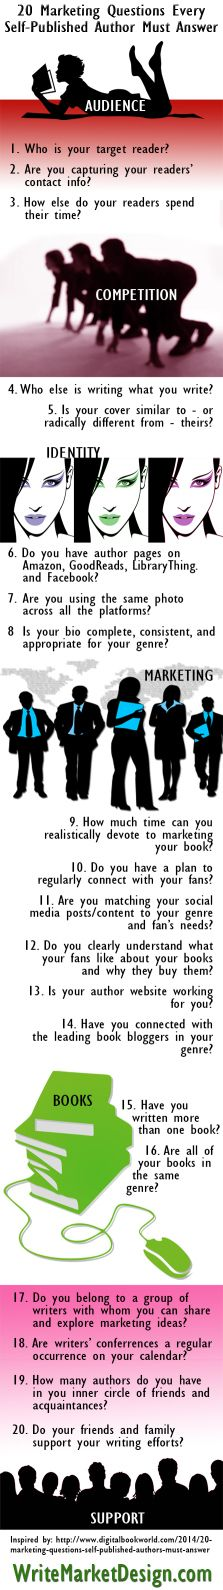 Marcie Brock, Book Marketing Maven | Practical book marketing advice for self-publishing authors, created by WriteMarketDesign.com